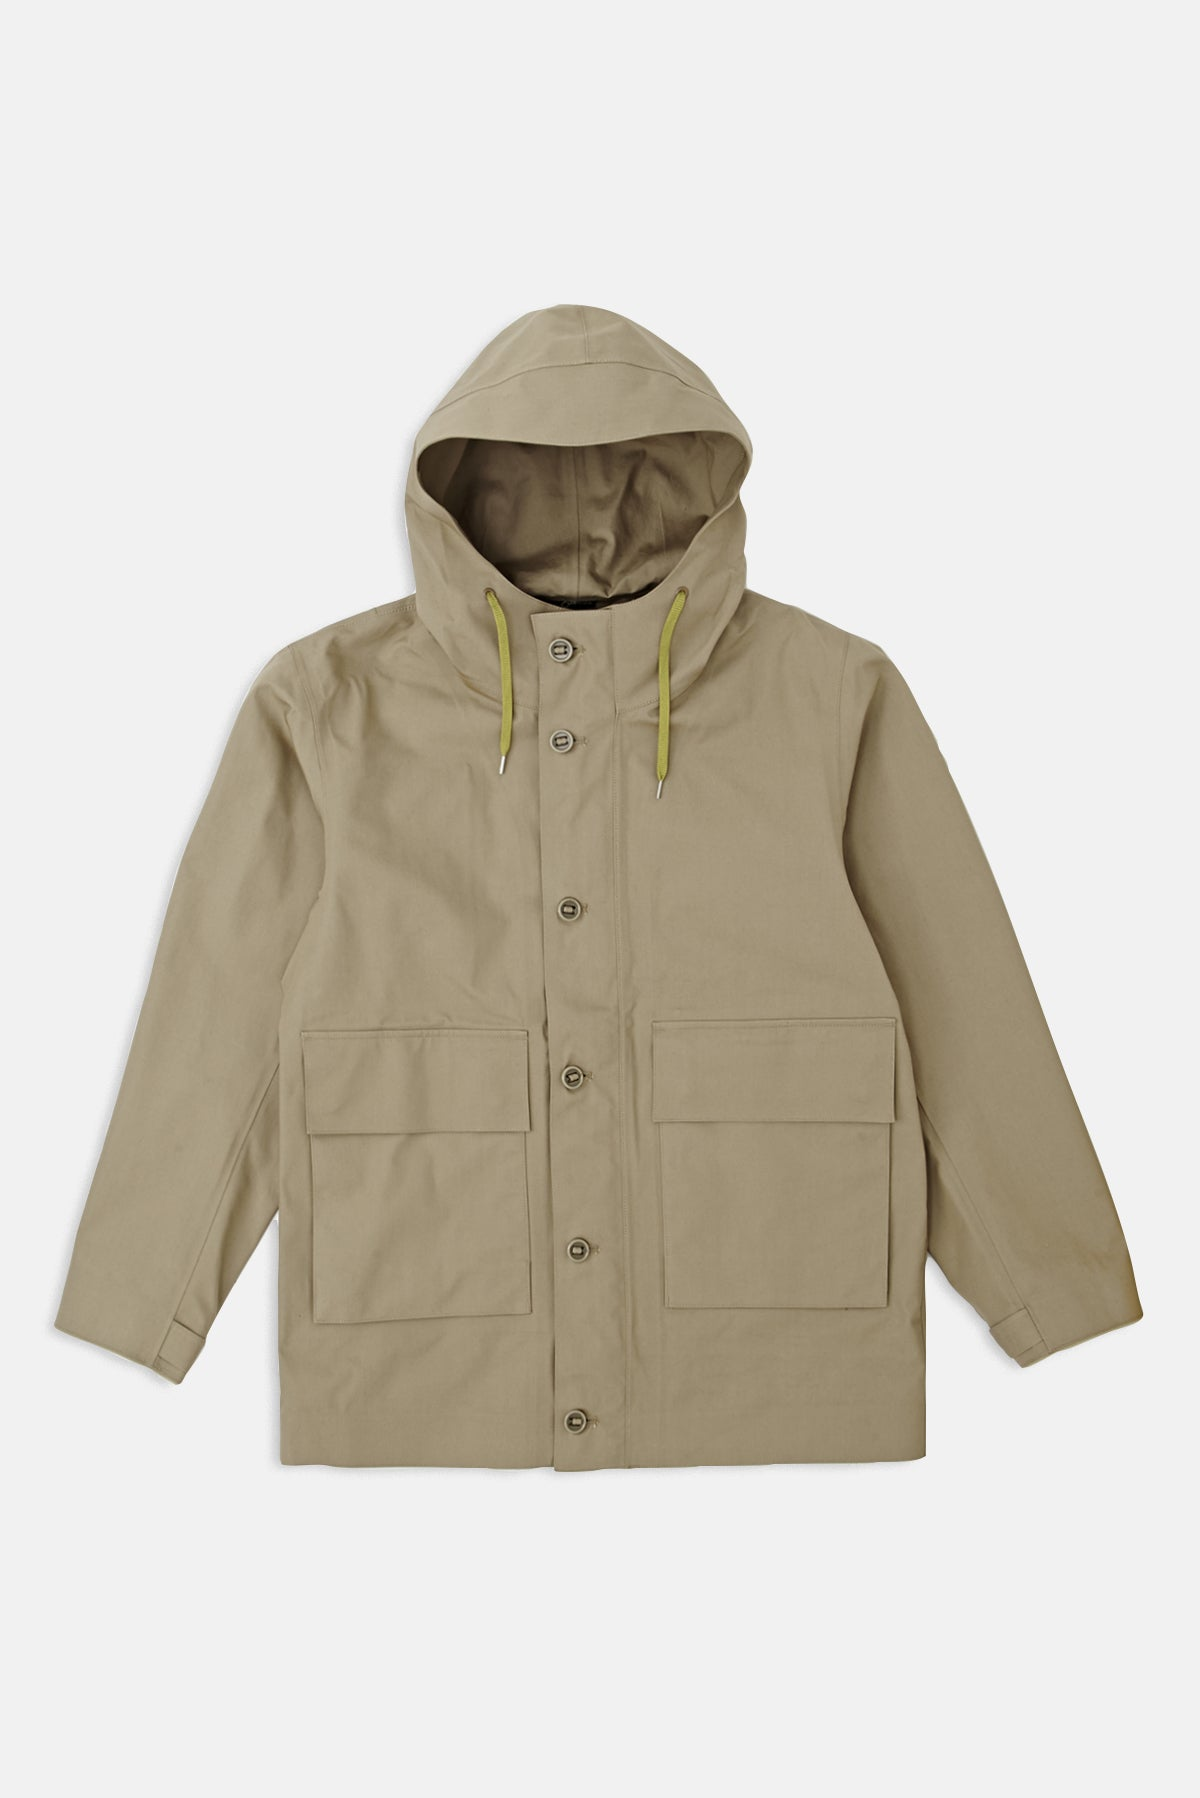 ec2d9b504c7 Nanamica GORE-TEX Cruiser Jacket available from Priory